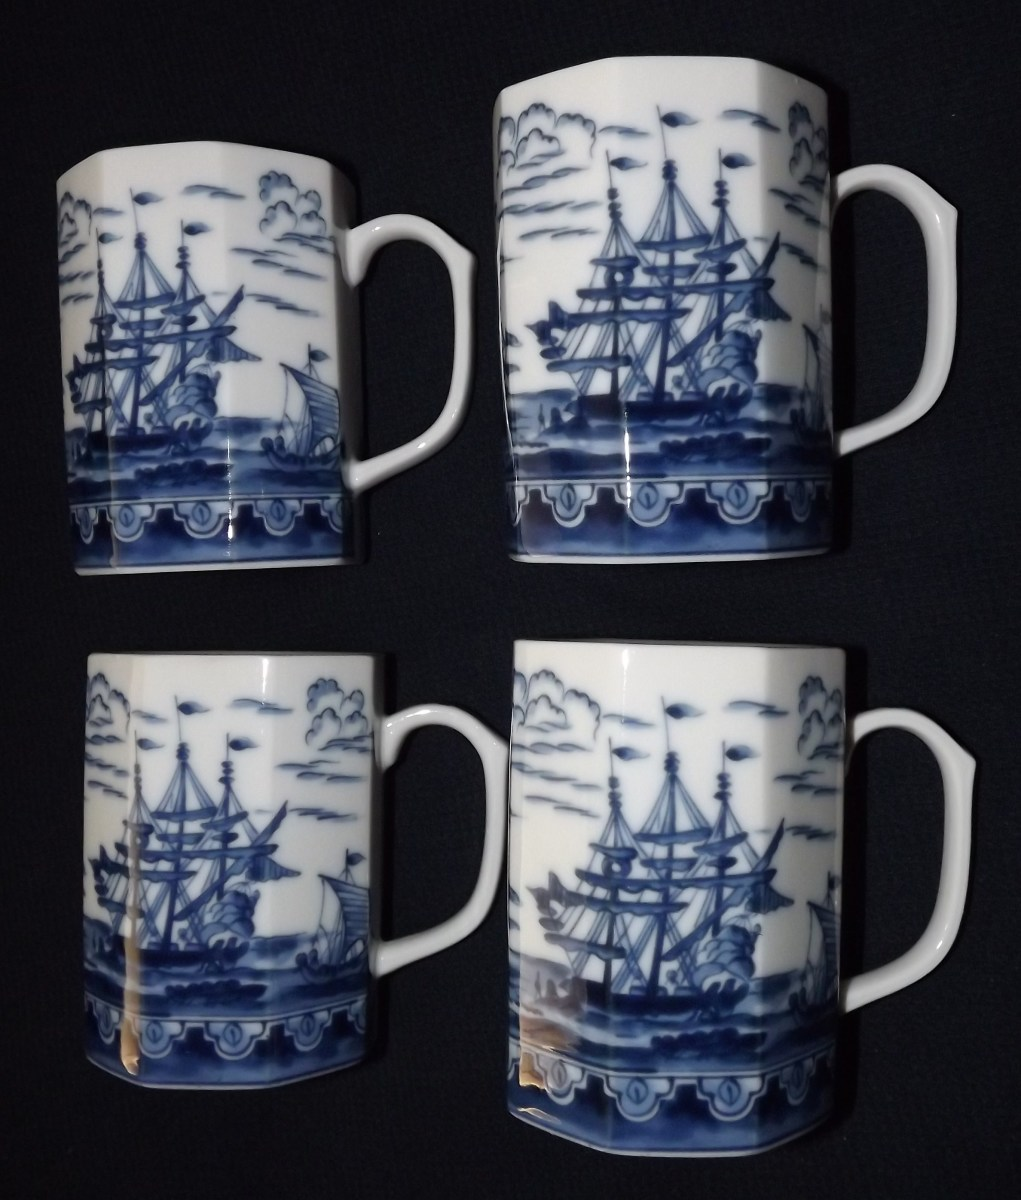 Set of 4 Tall Ships and Chinese Junks Mugs That Sold for $32.00